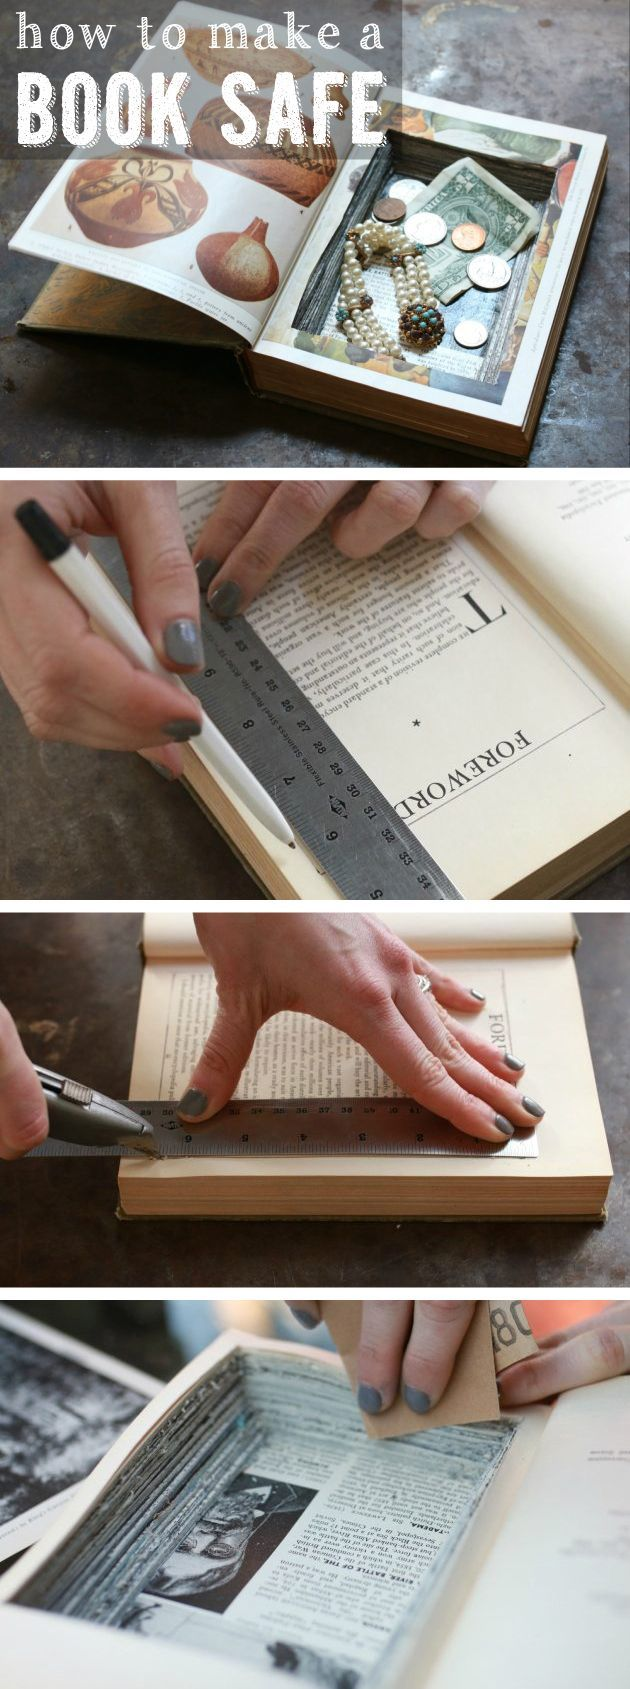 Yes! A book safe is such a fun project and adds a whole other level of cool to…